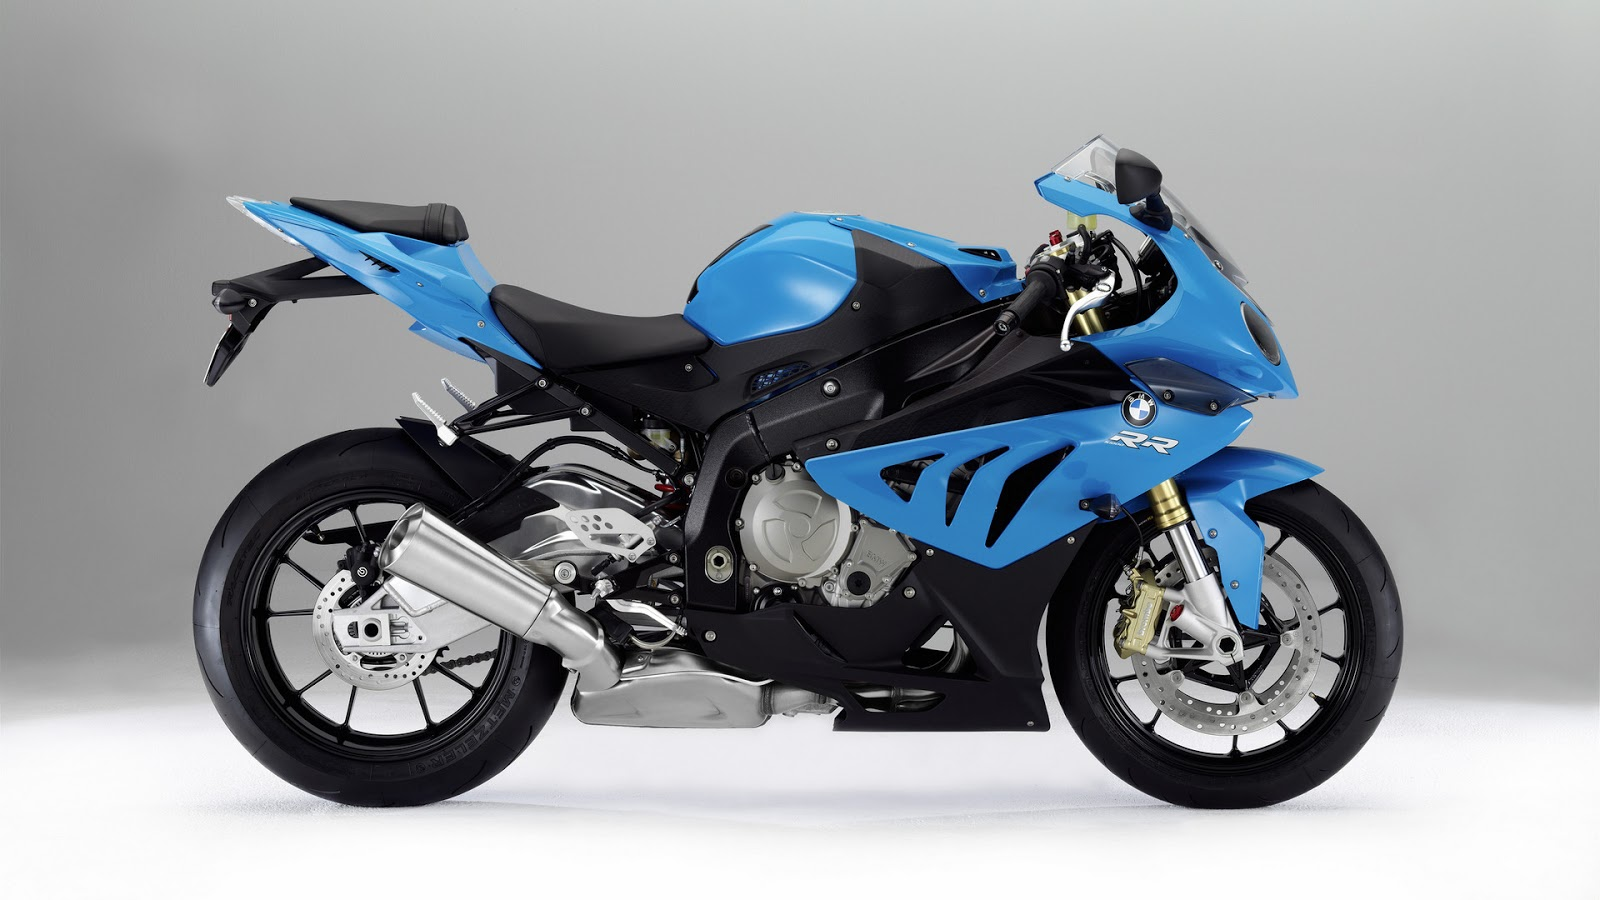 10 World's Fastest Motorcycles in 2019 |Fastest Bmw Bike